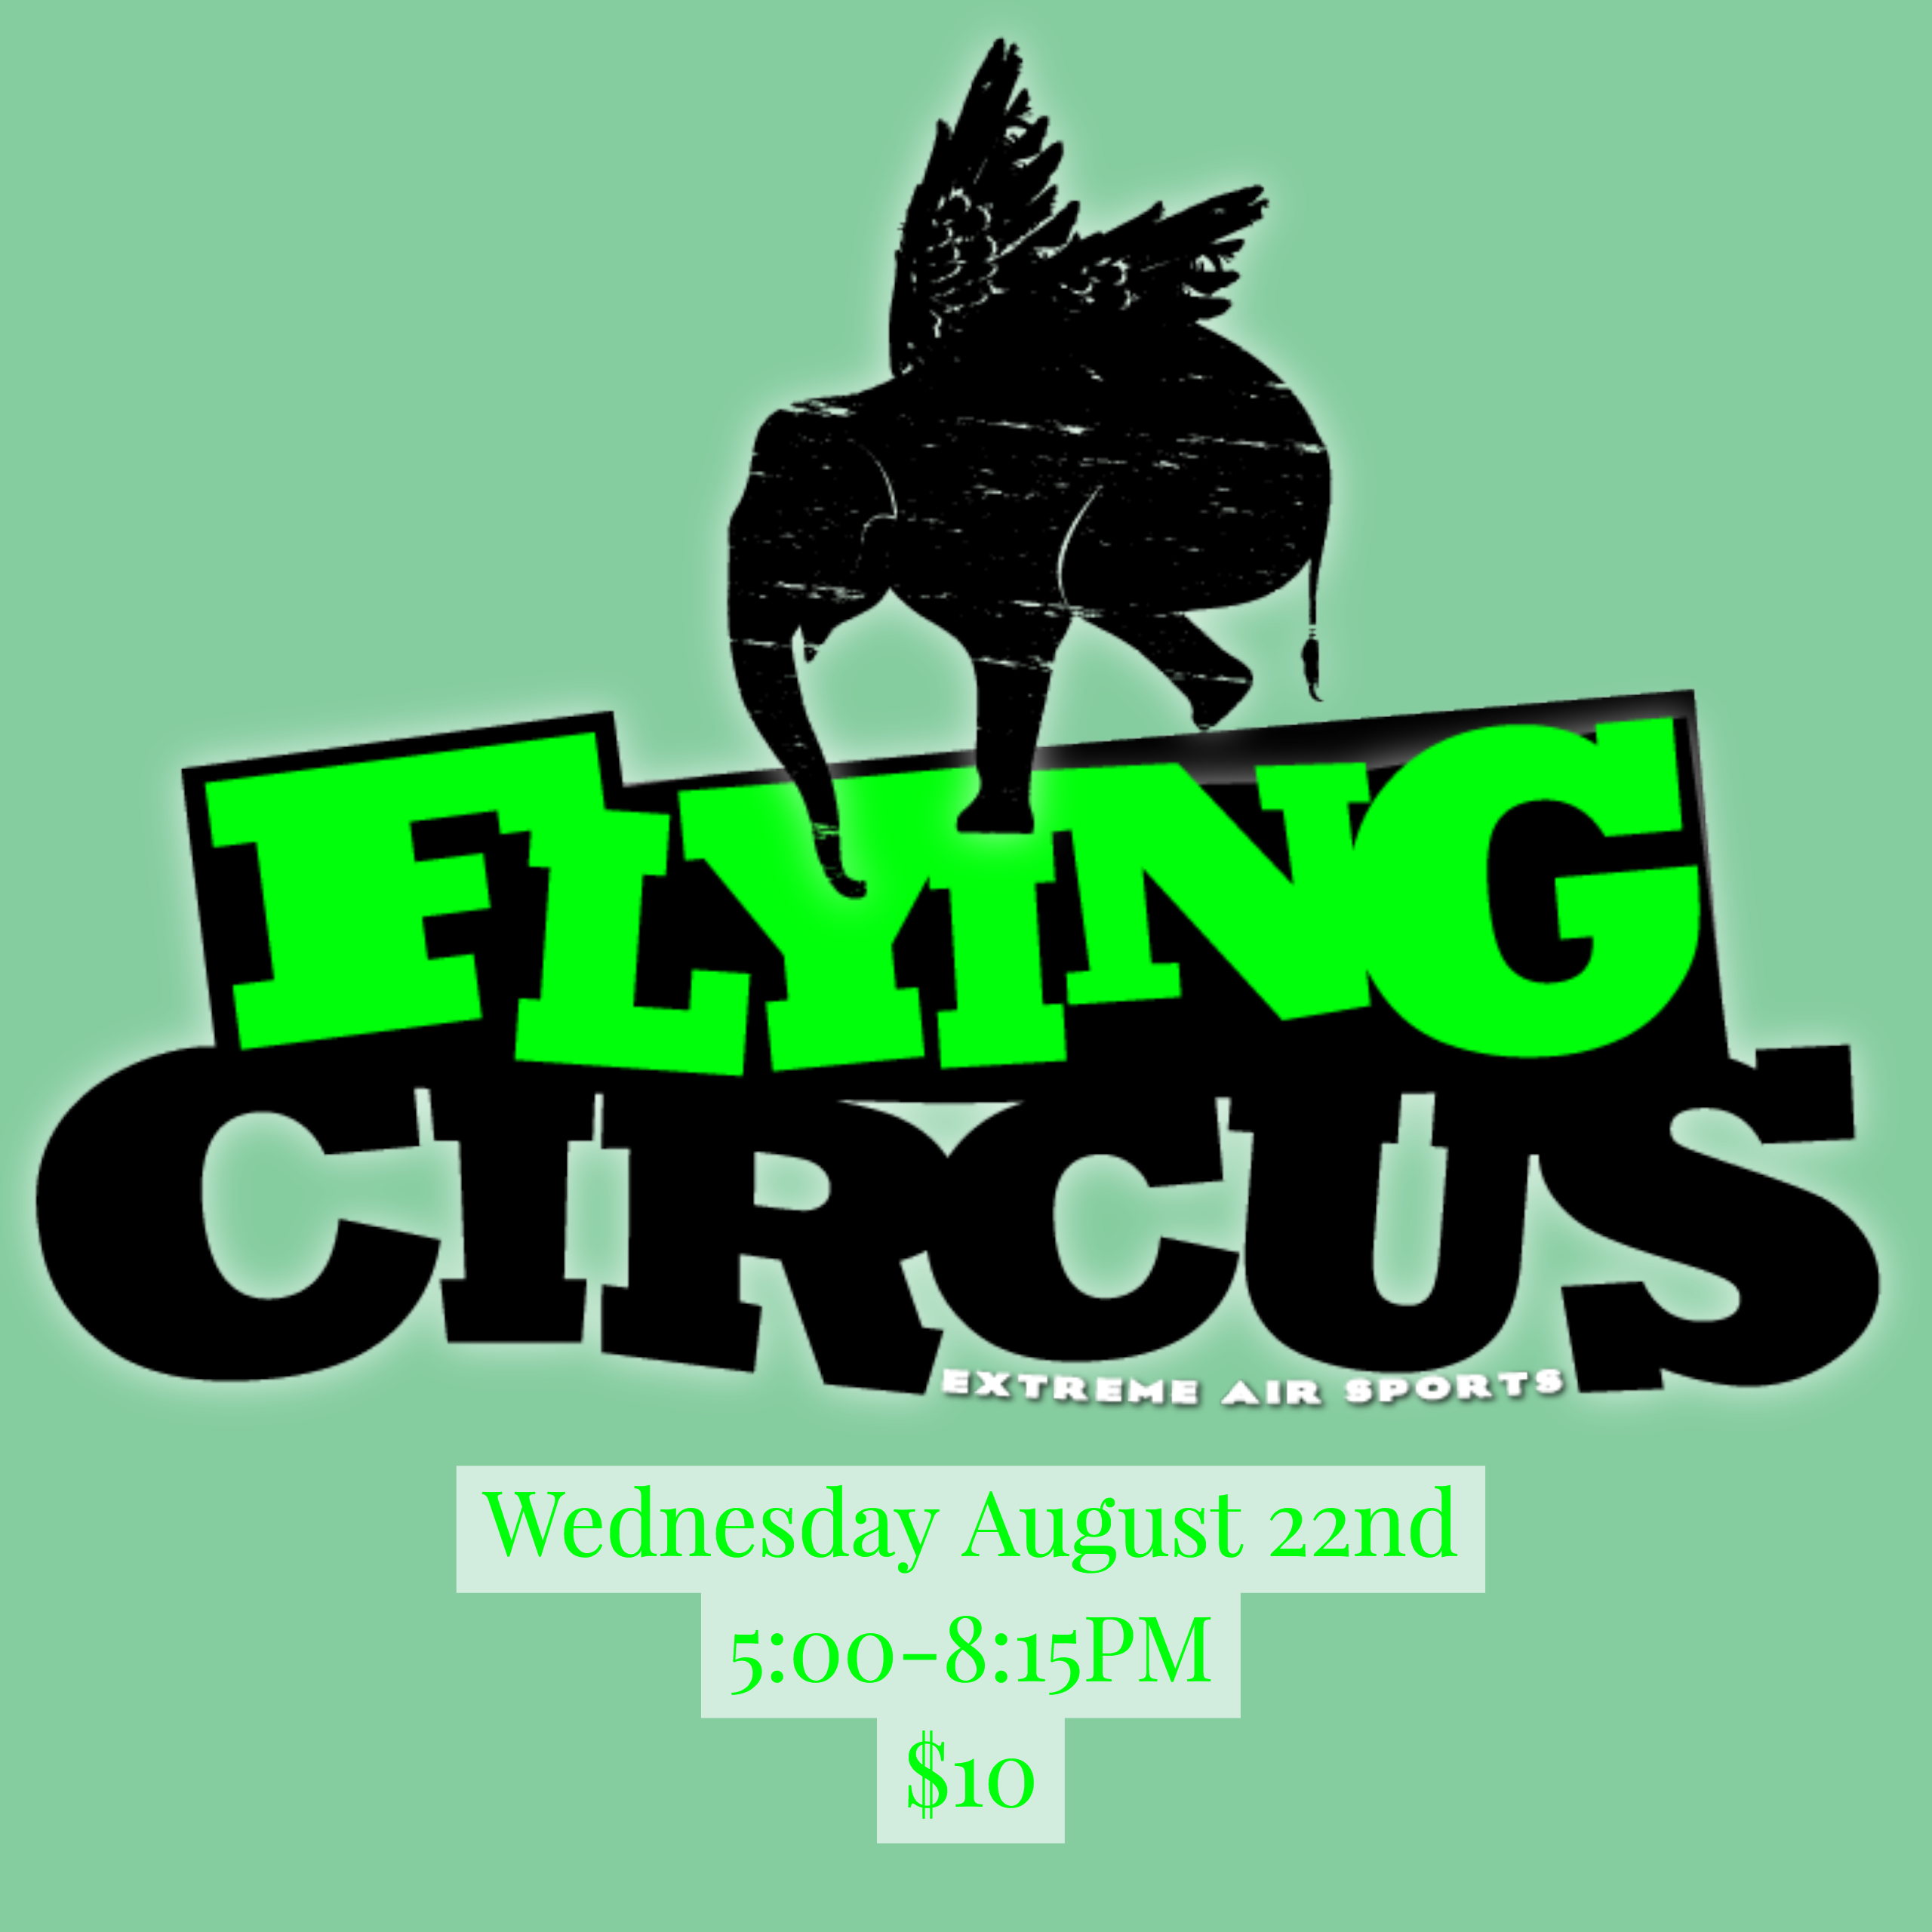 Flying circus square